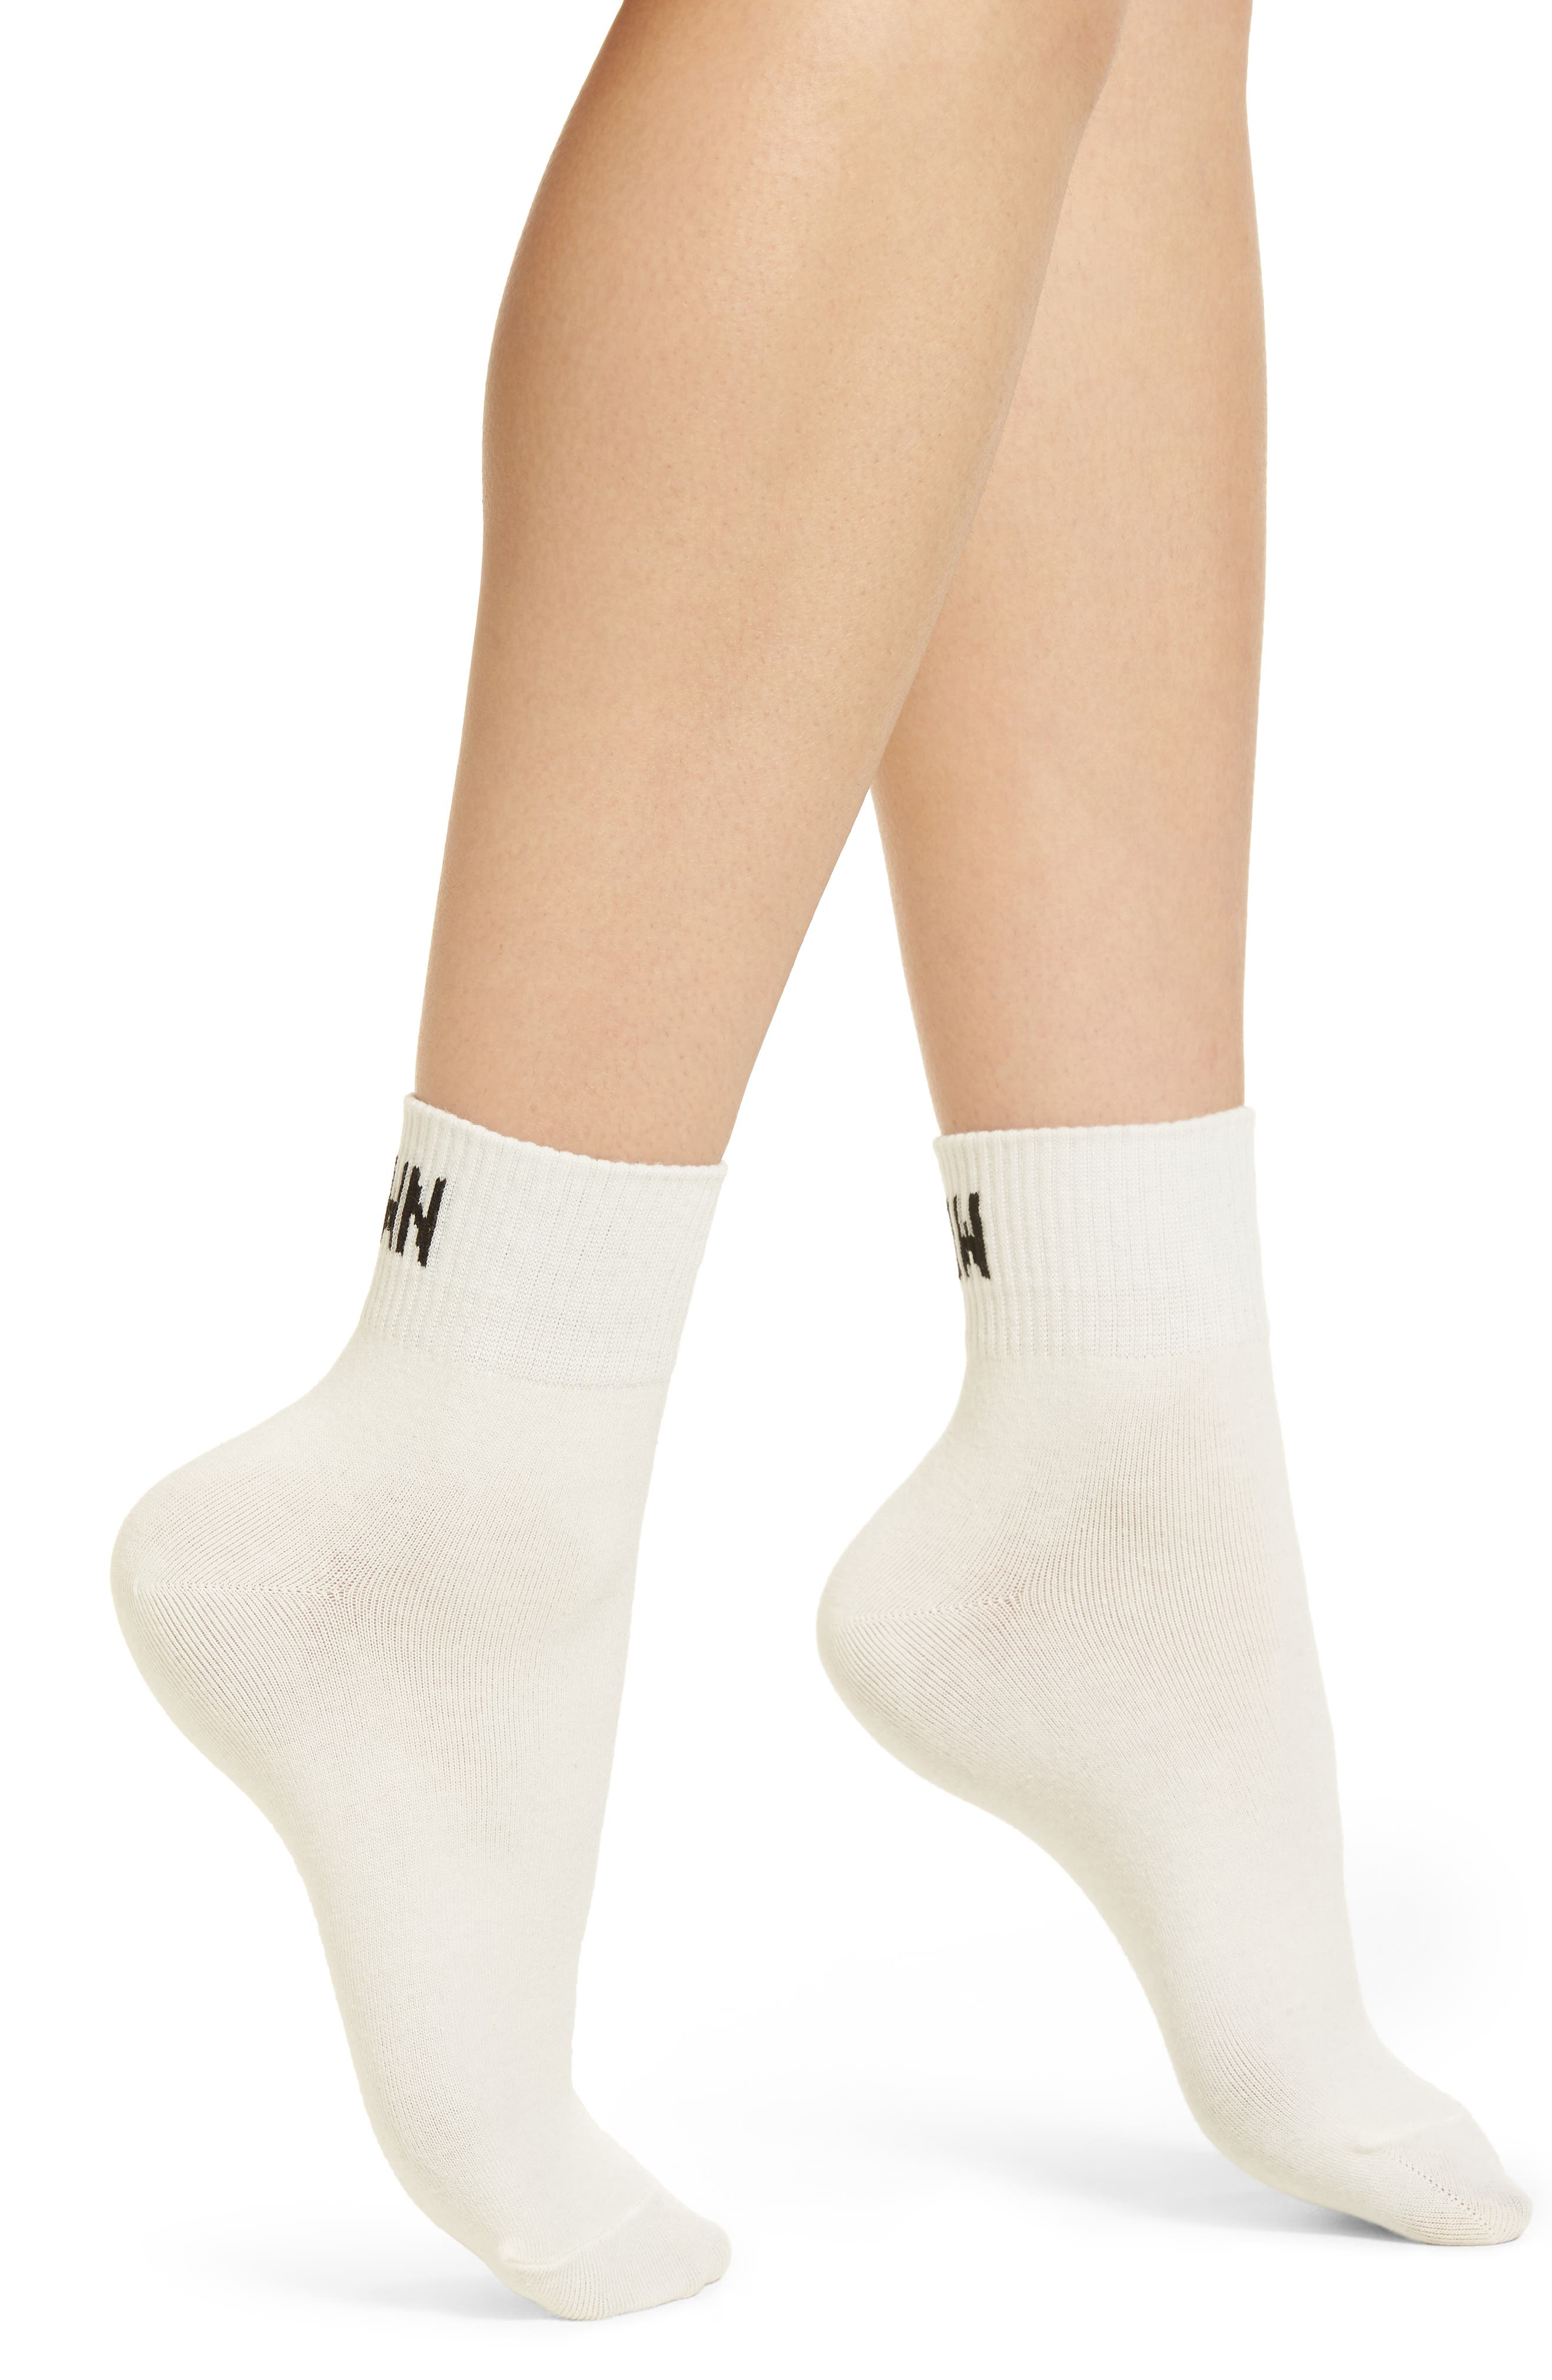 Slow Down Ankle Socks,                             Main thumbnail 1, color,                             White